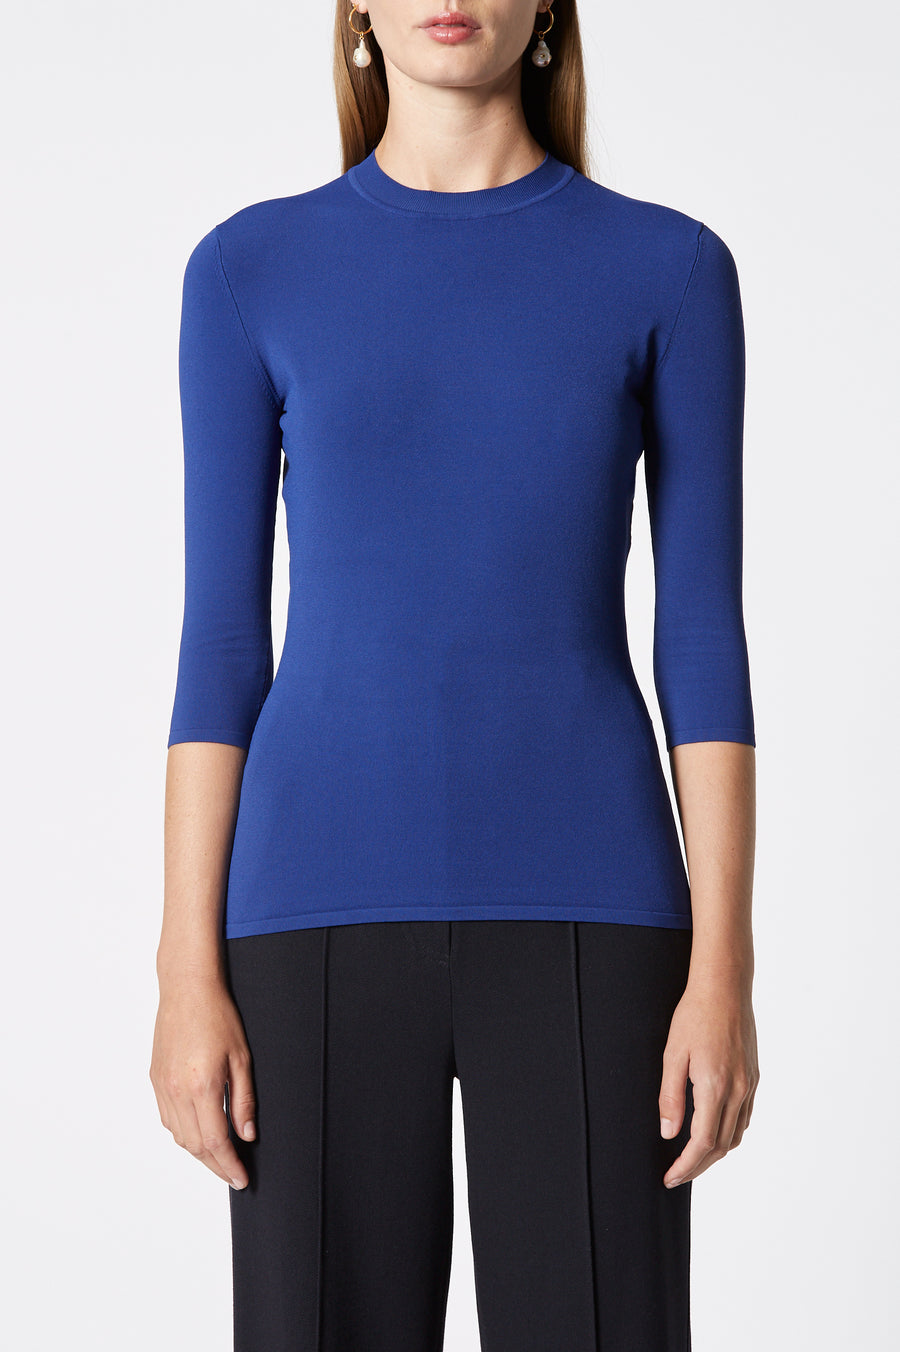 ANGEL CREW NECK SWEATER, crew neck, 3 quarter sleeve, Color Cobalt